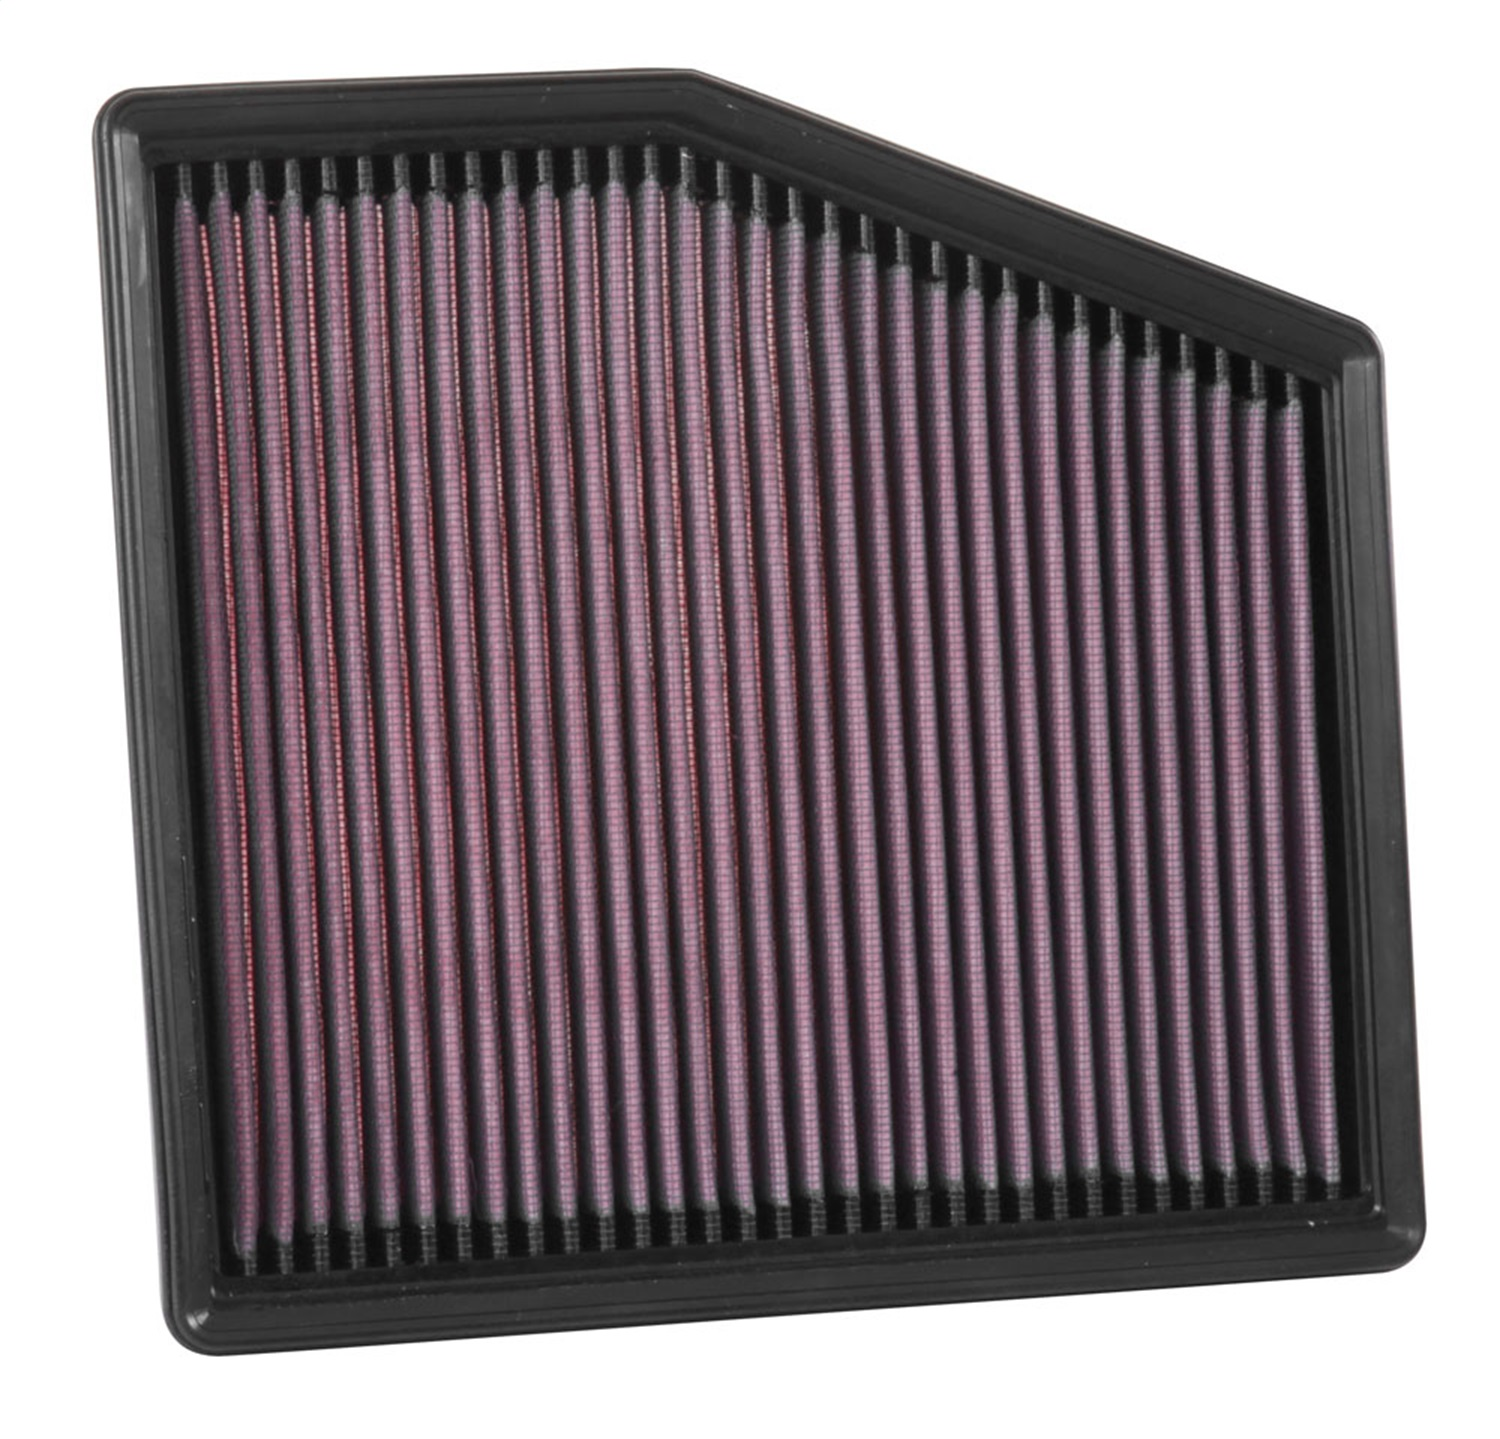 K&N Filters For 2017-2019 Chrysler Pacifica Air Filter